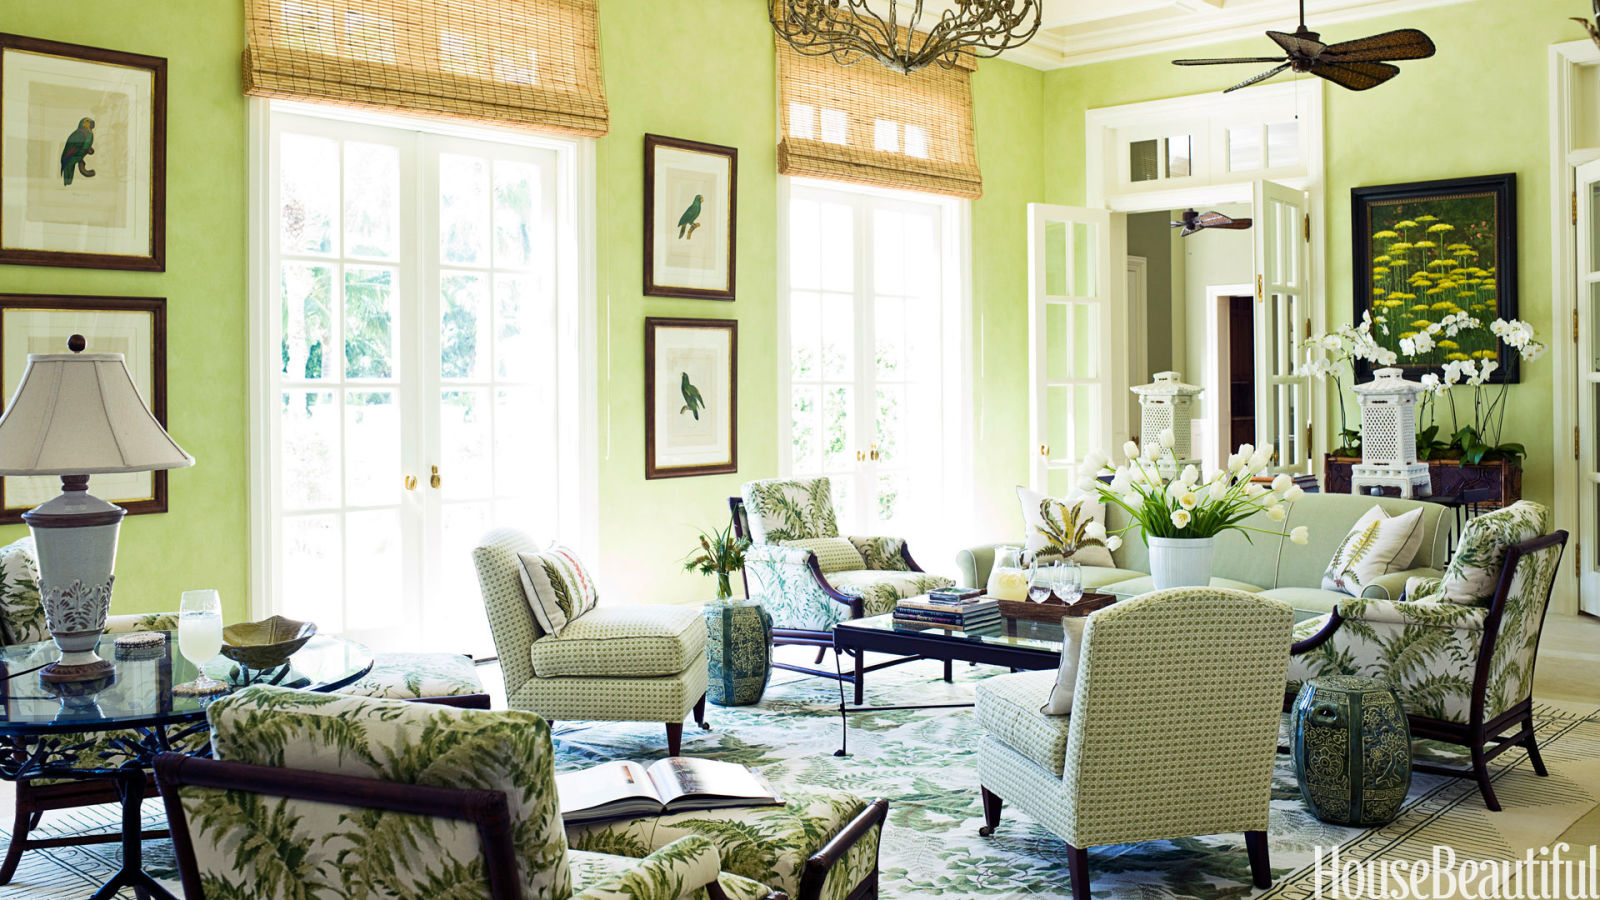 Rooms With Green Walls rooms color meaning - paint color meaning